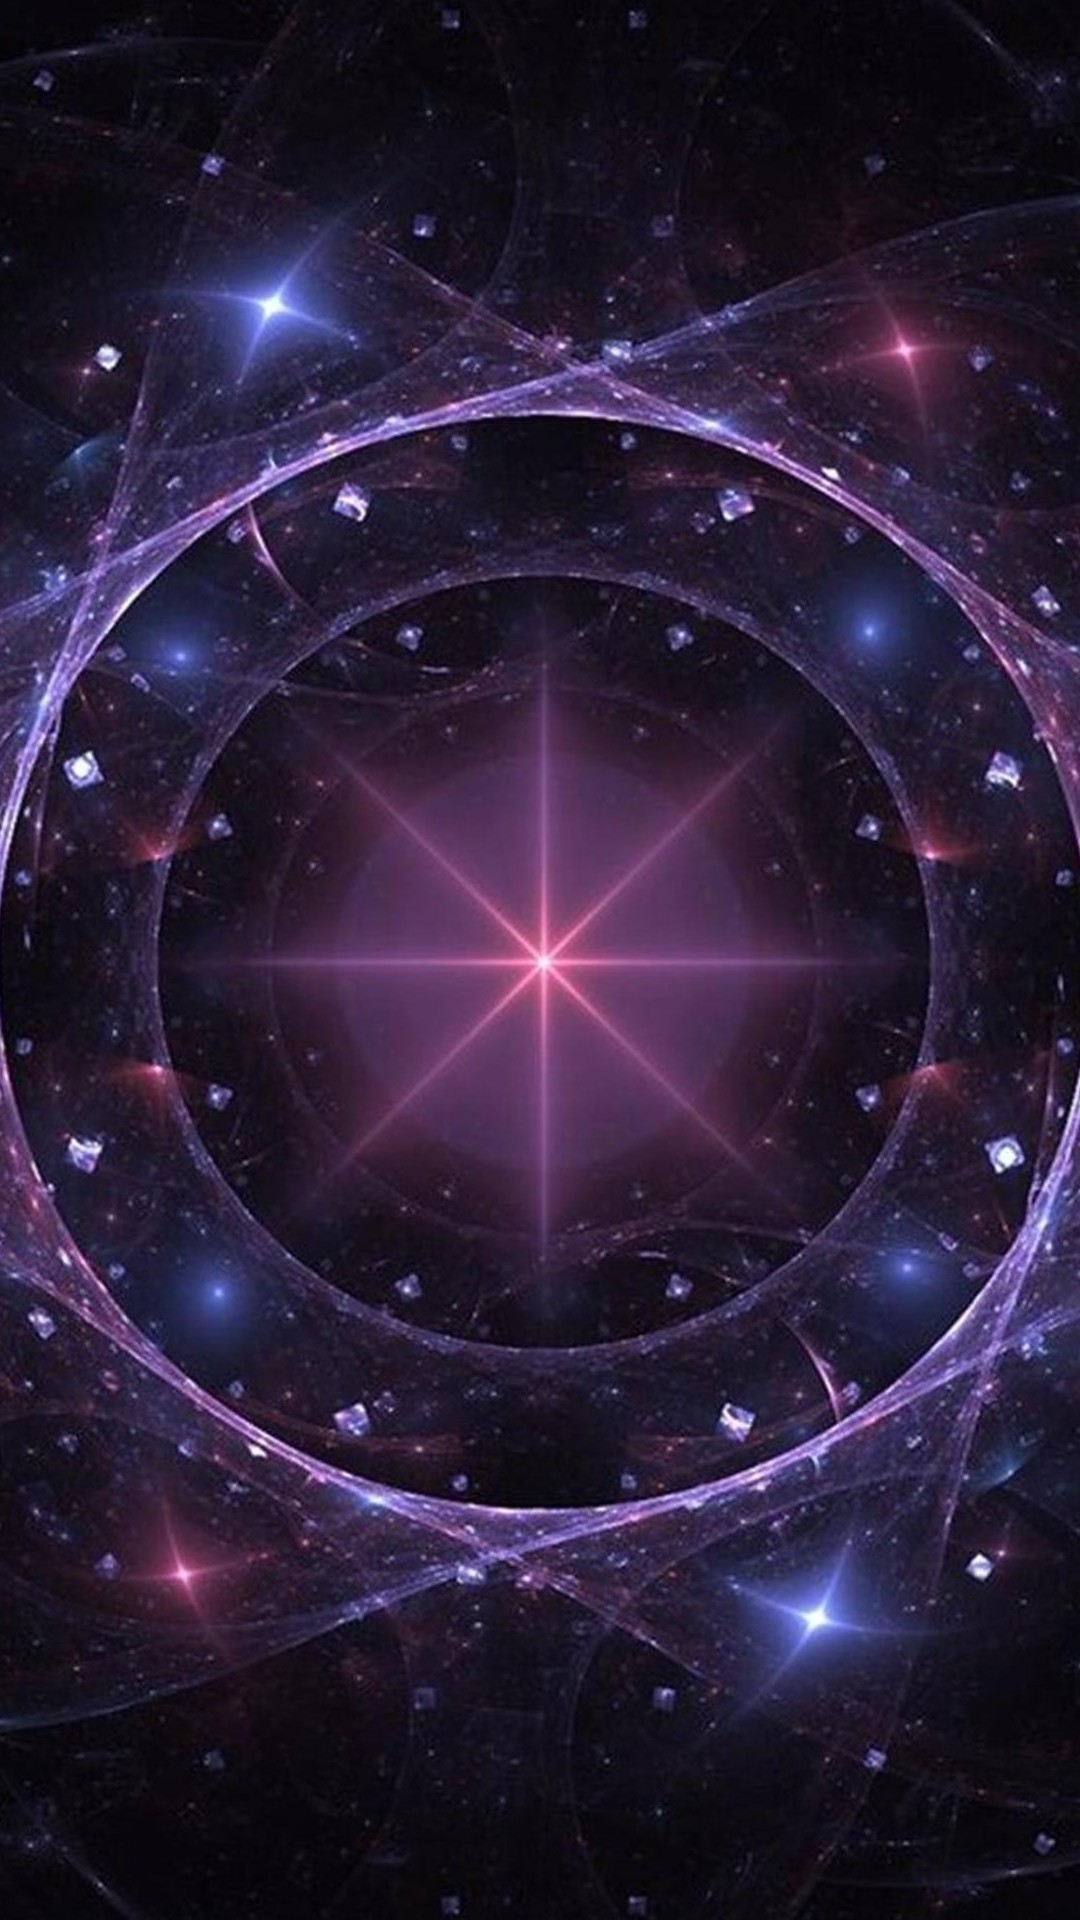 I Like It As Above So Below..Always From Micro To Macro Cosmos !